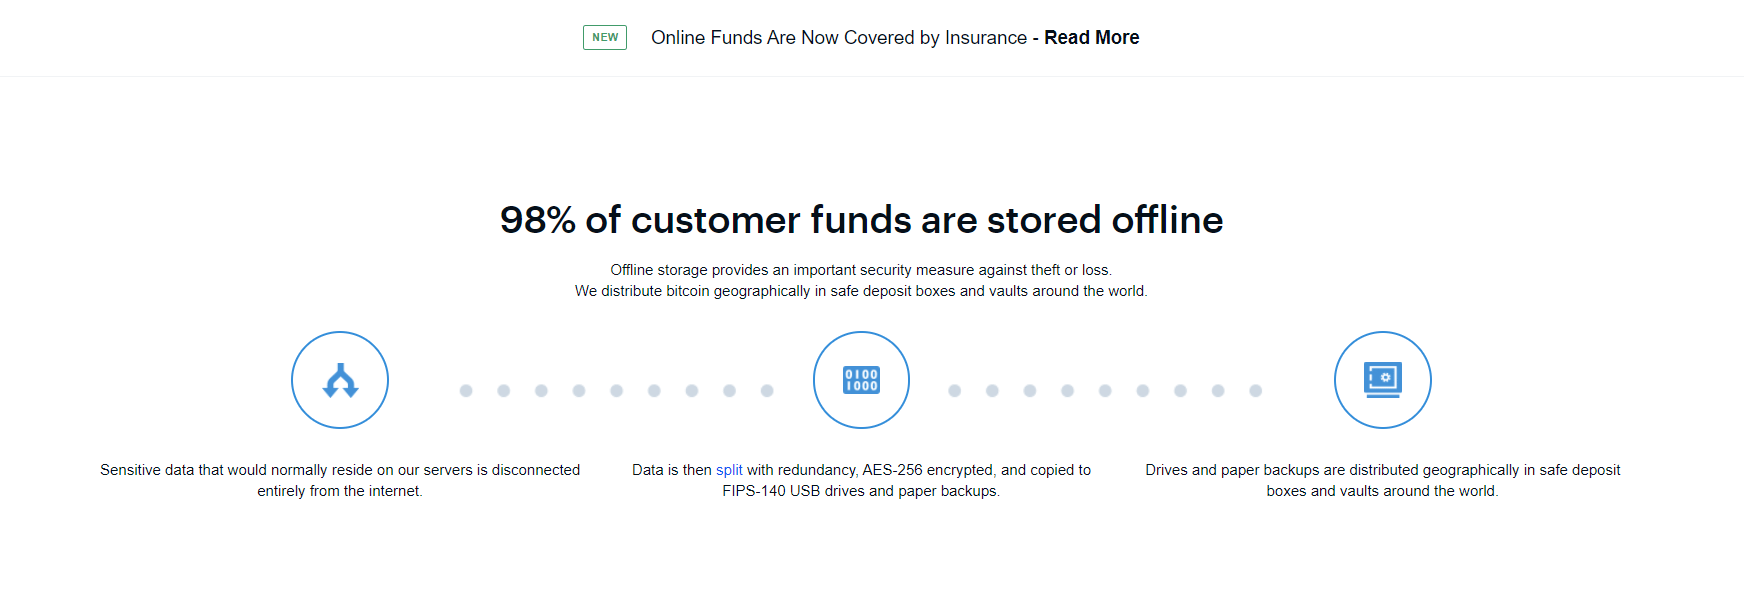 how coinbase stores funds offline